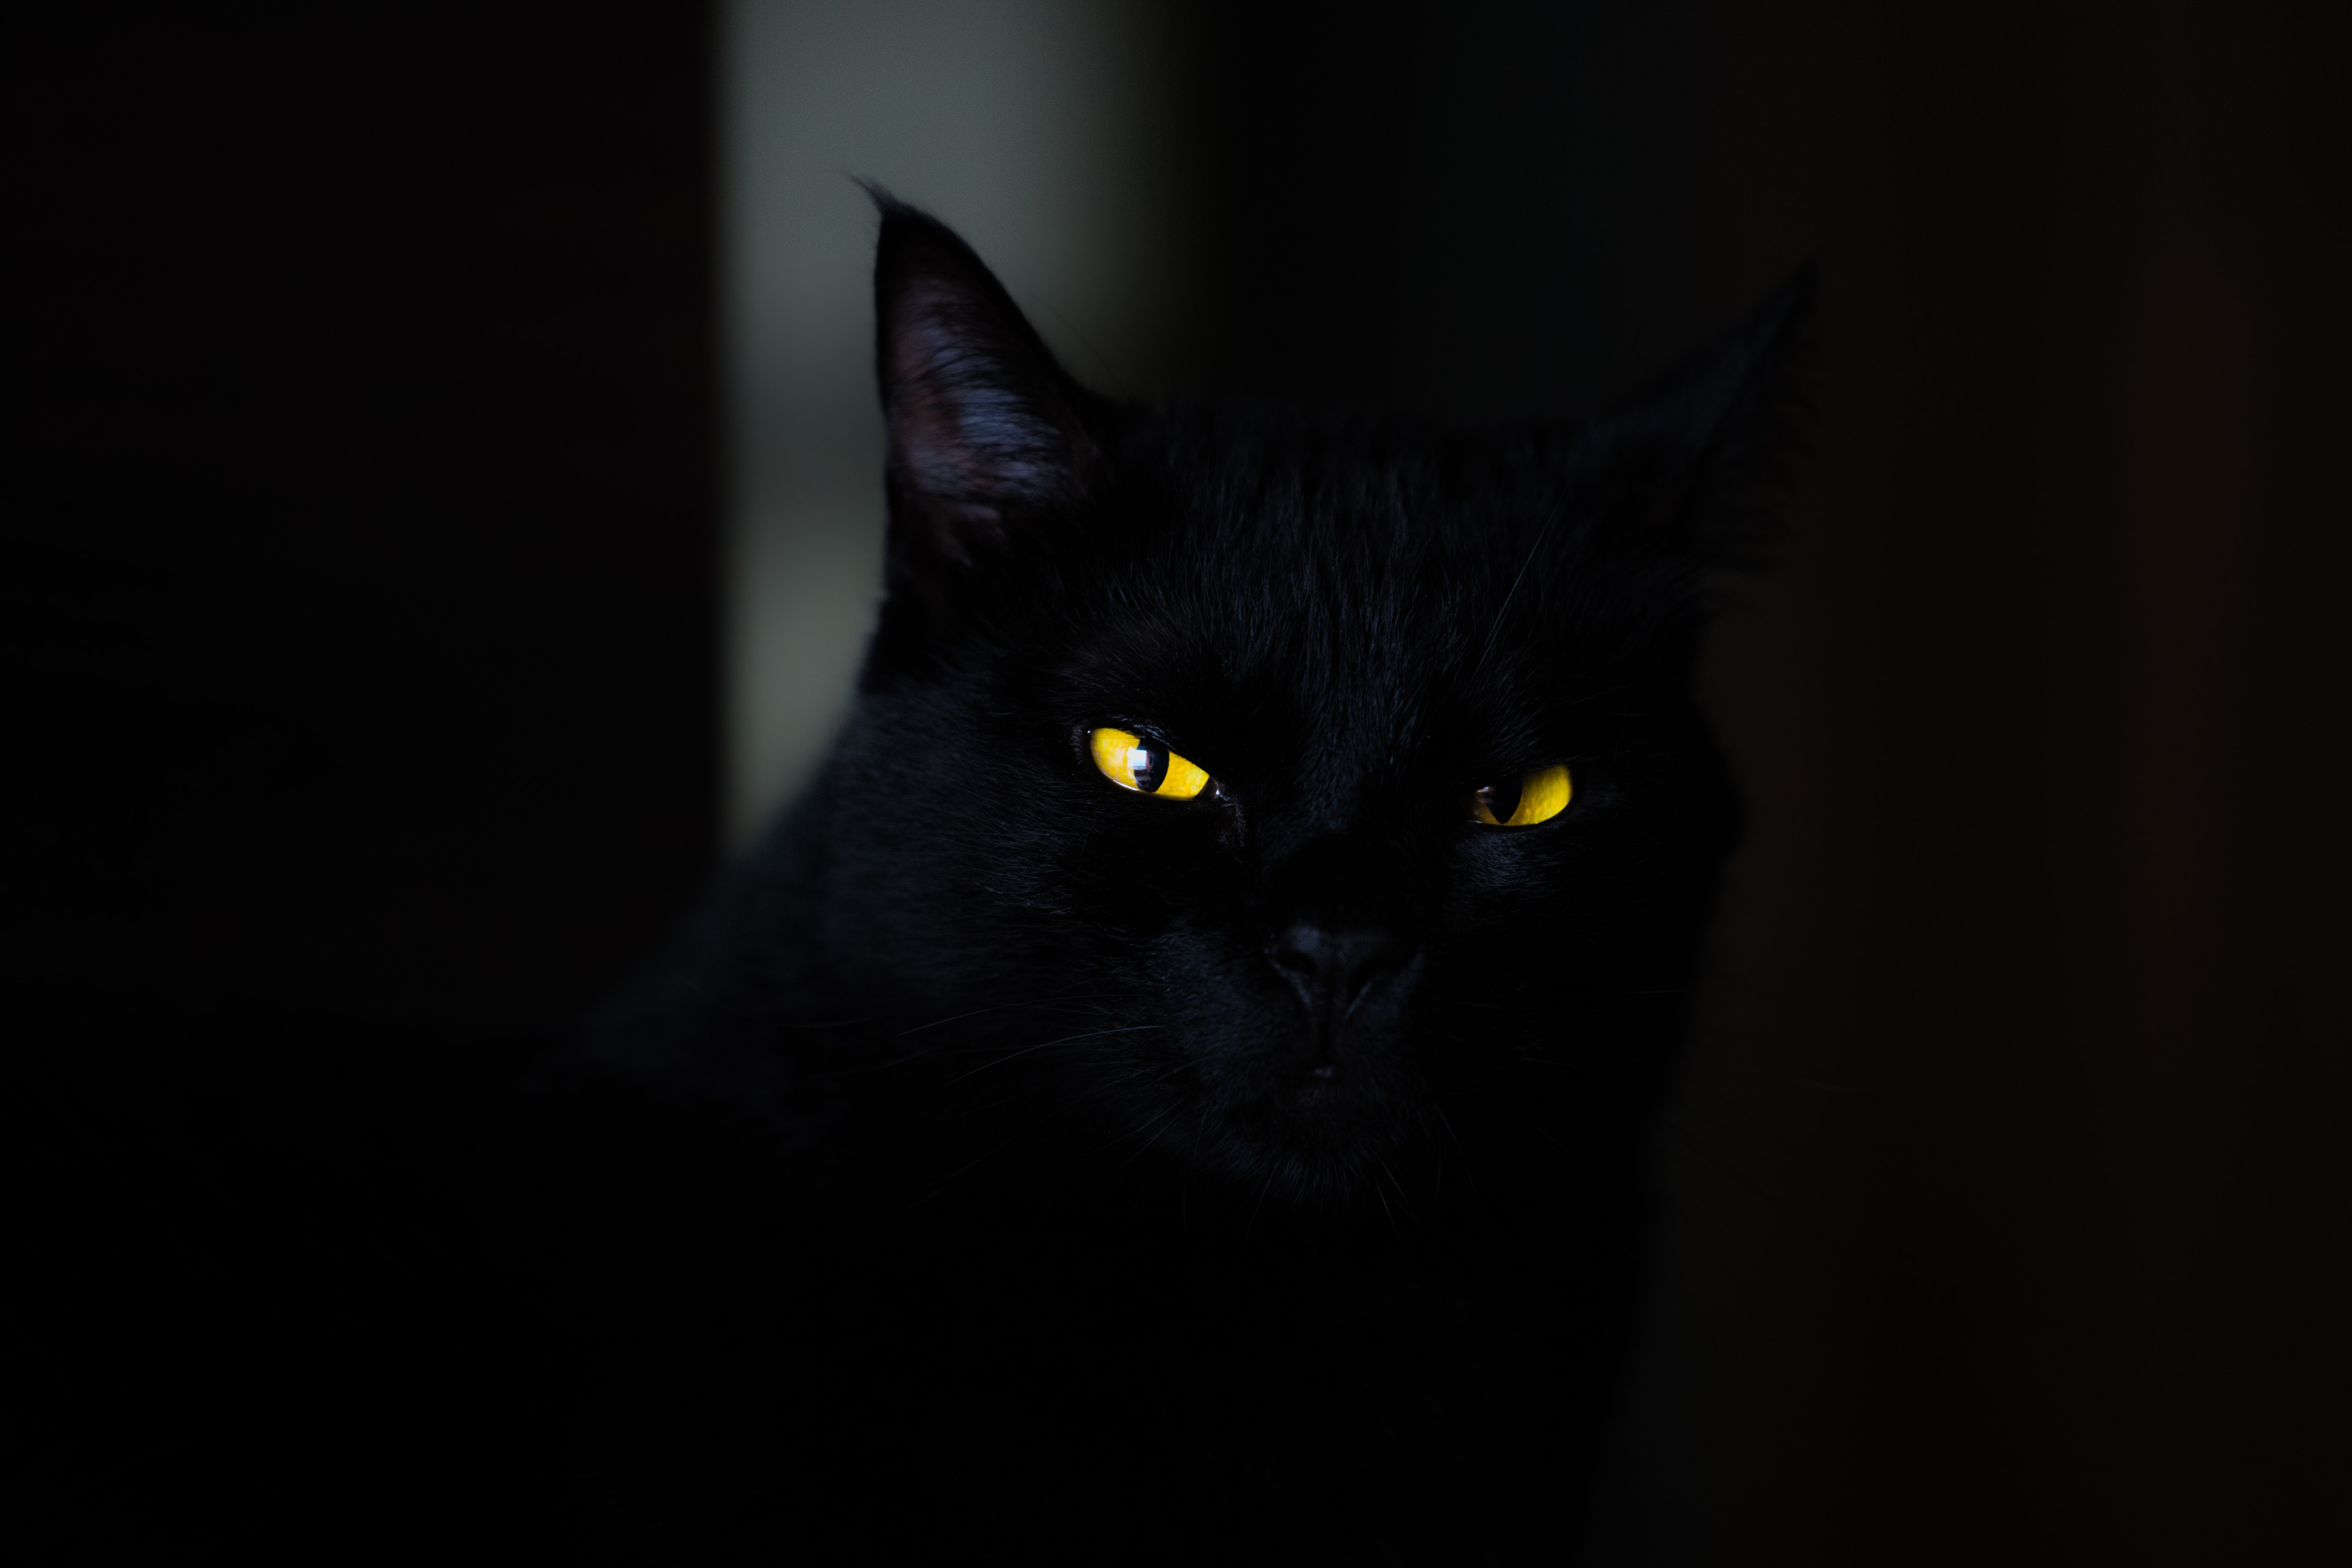 ScaryCat